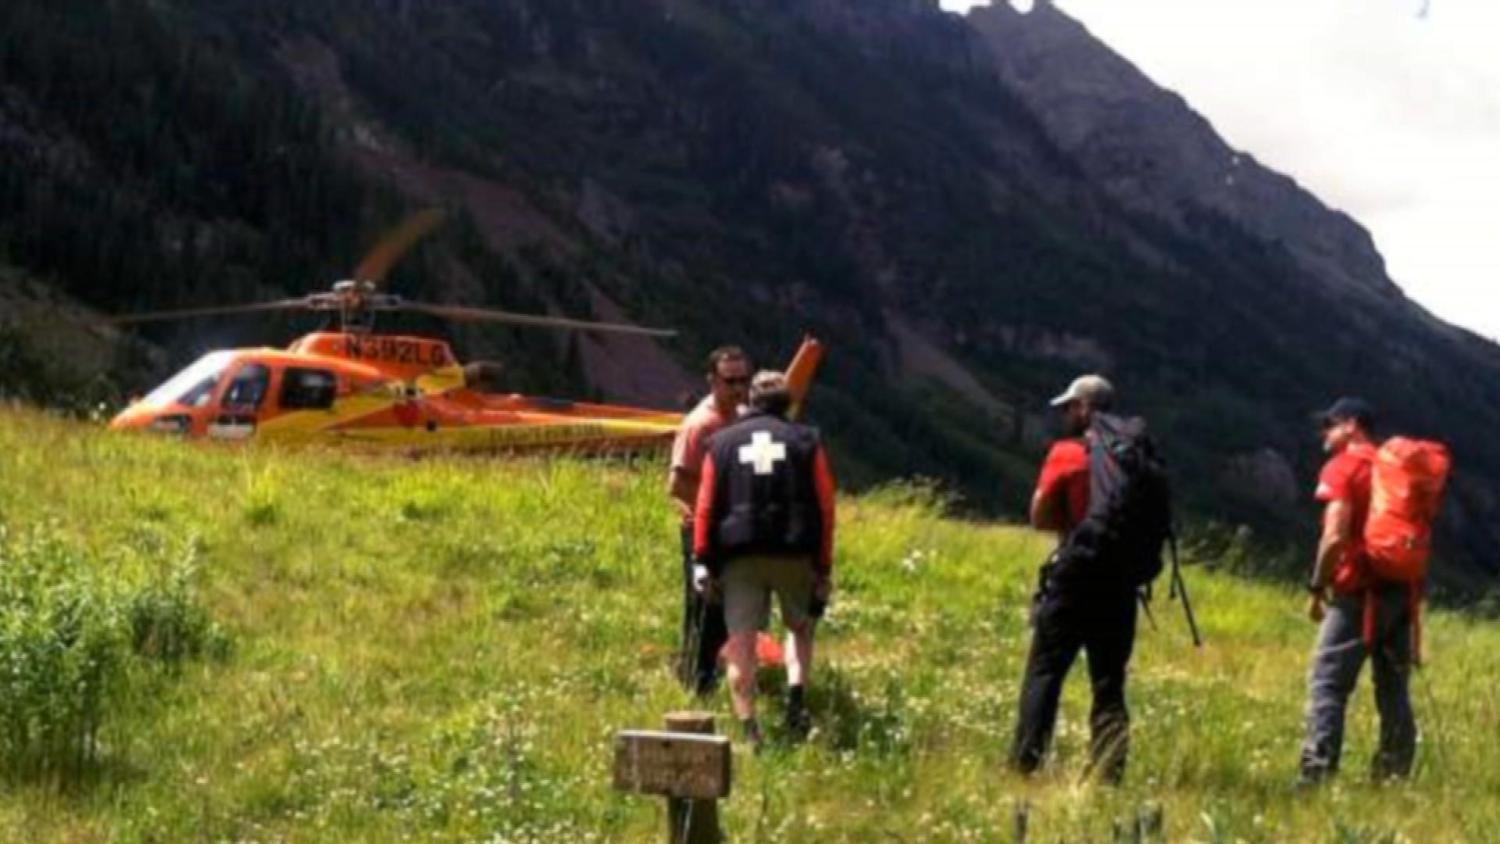 Life flight and search and rescue personnel respond to two deaths near Maroon Lake, Colorado on Wednesday.  denver.cbslocal.com